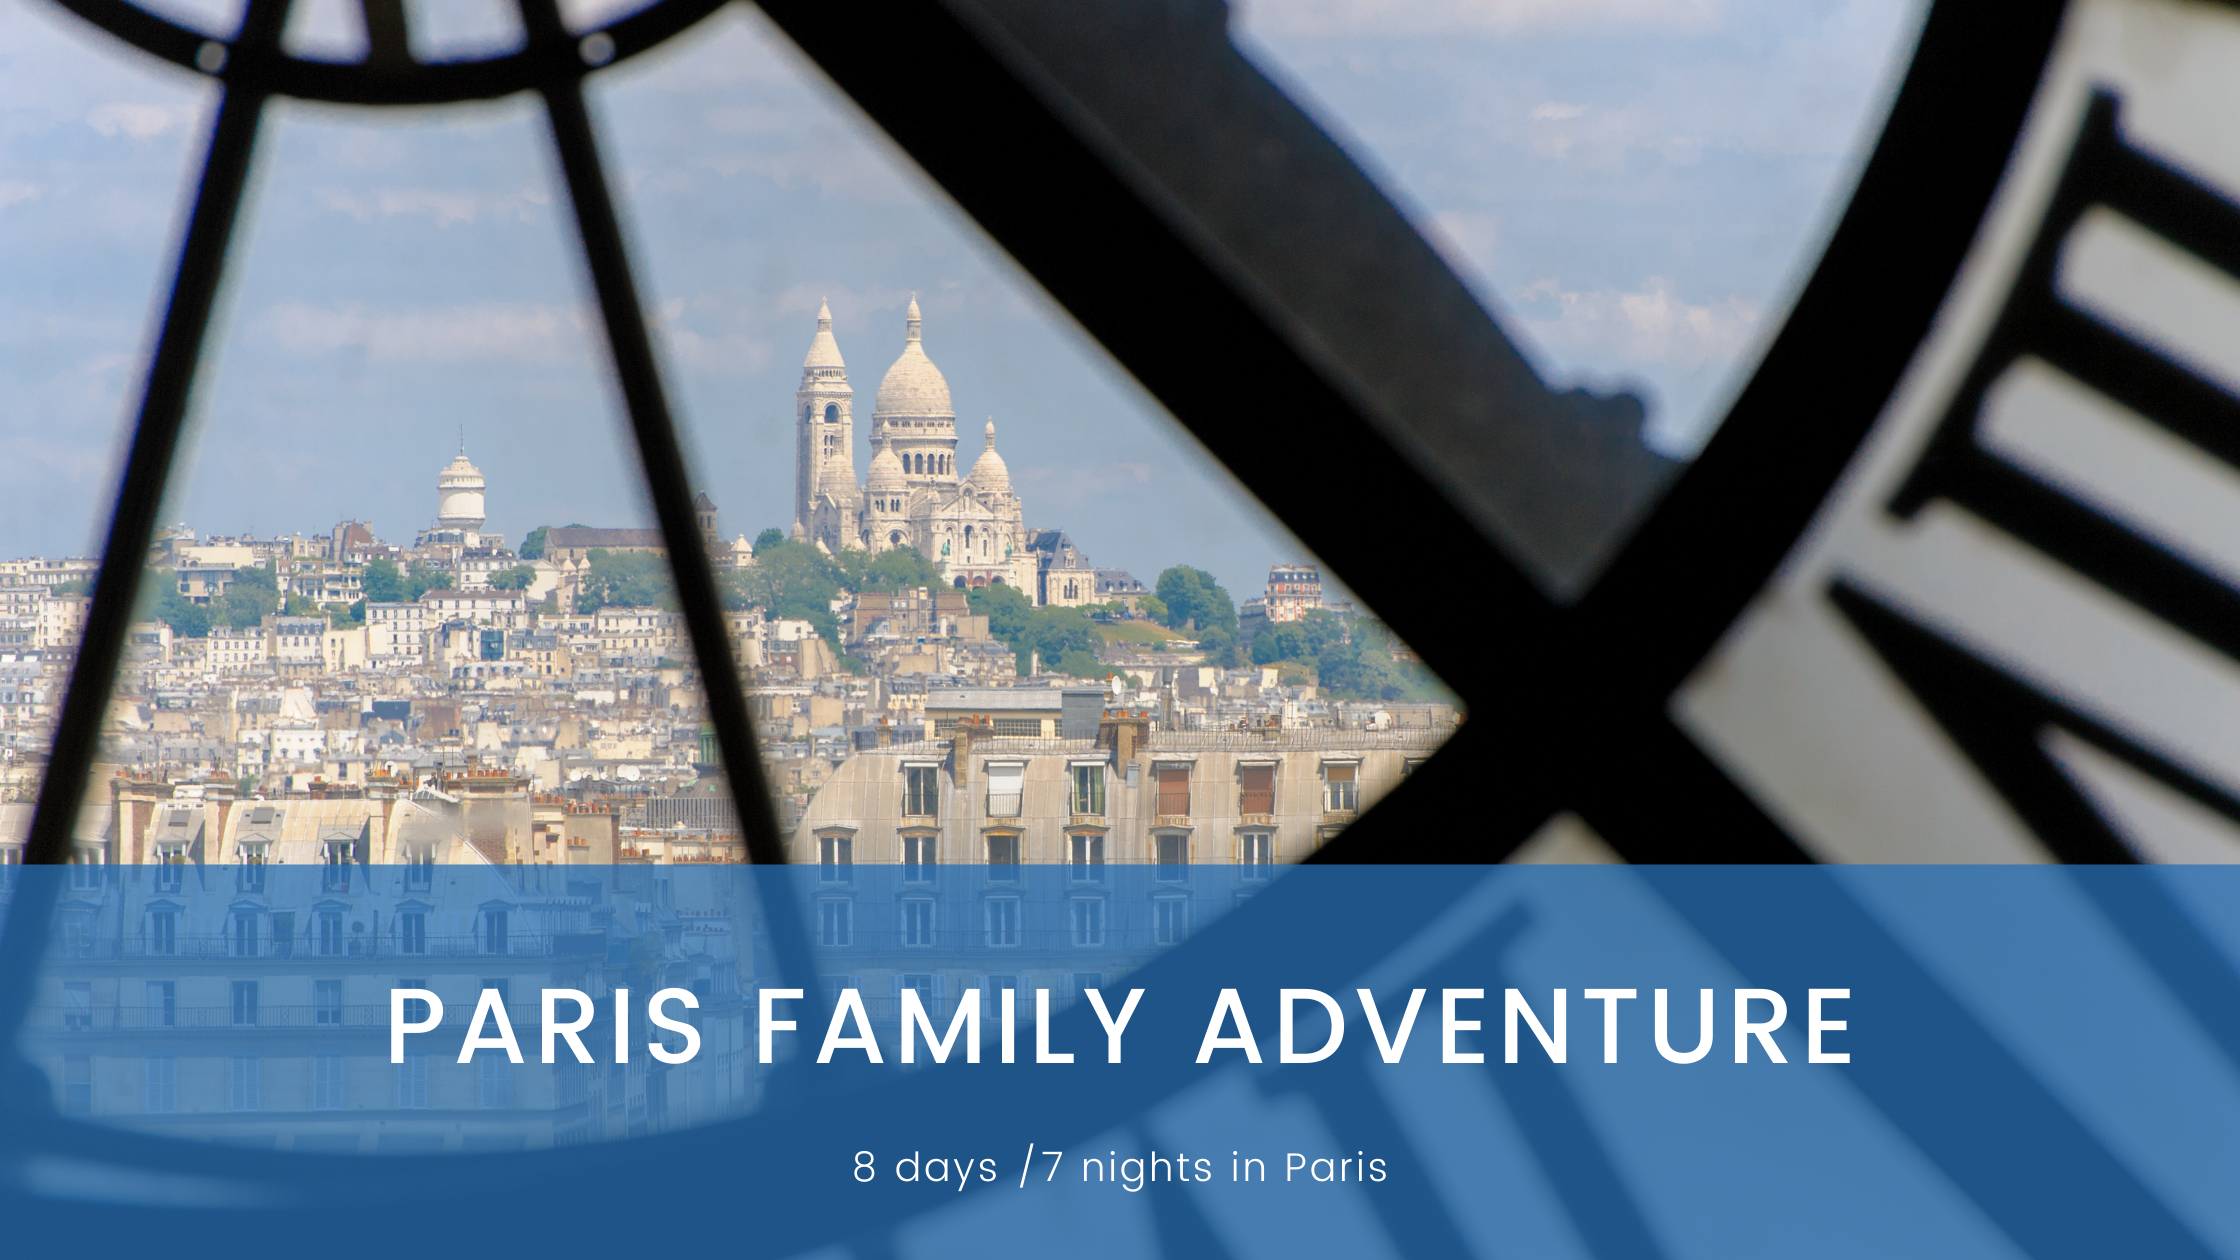 Paris Family Adventure